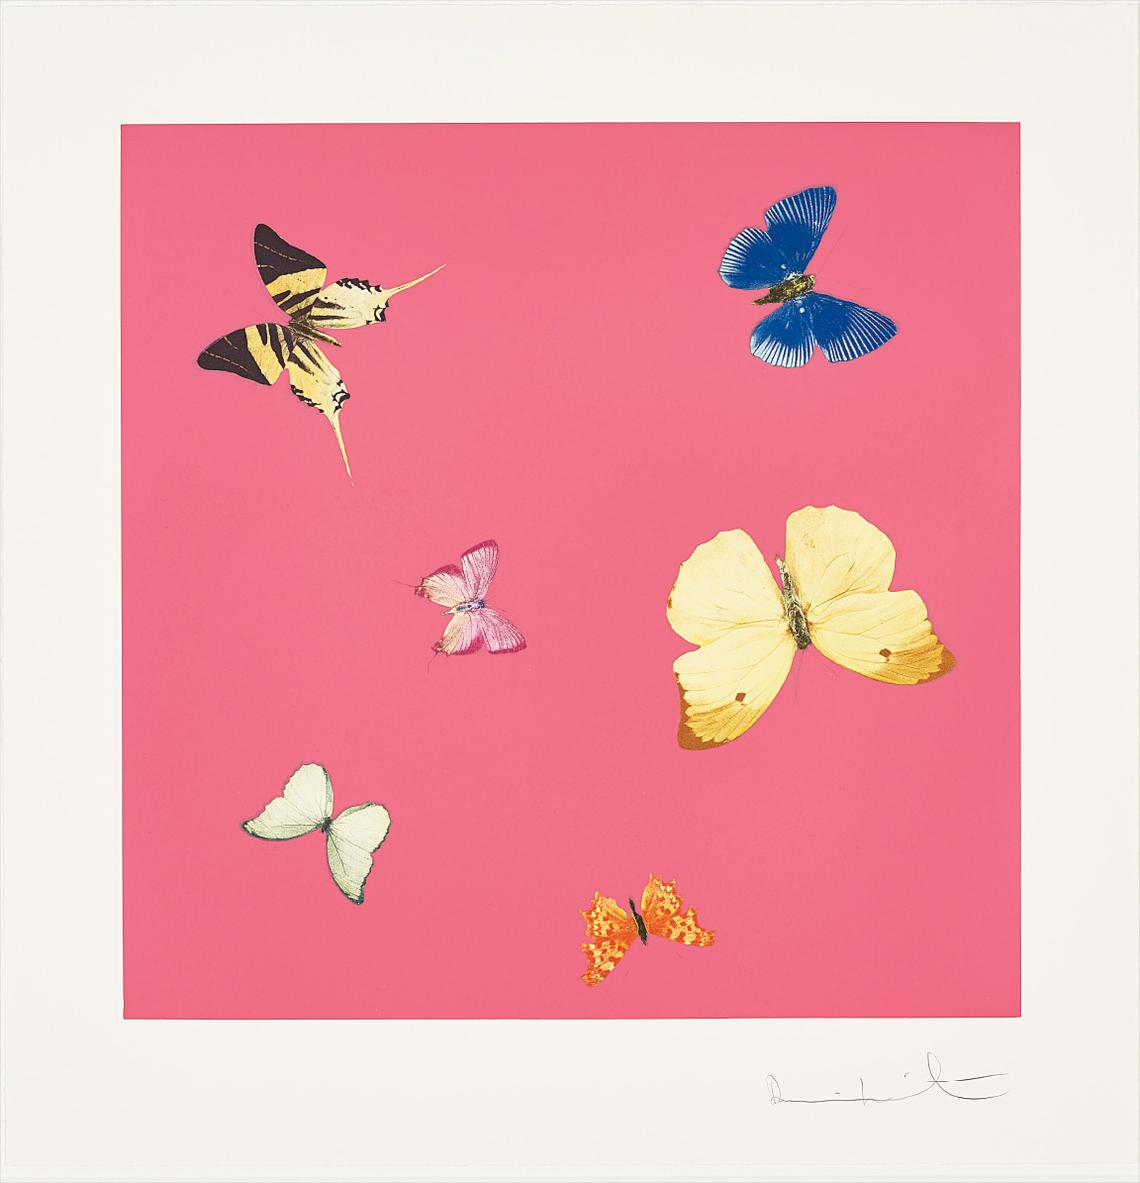 Damien Hirst-Lullaby, From Love Poems-2014